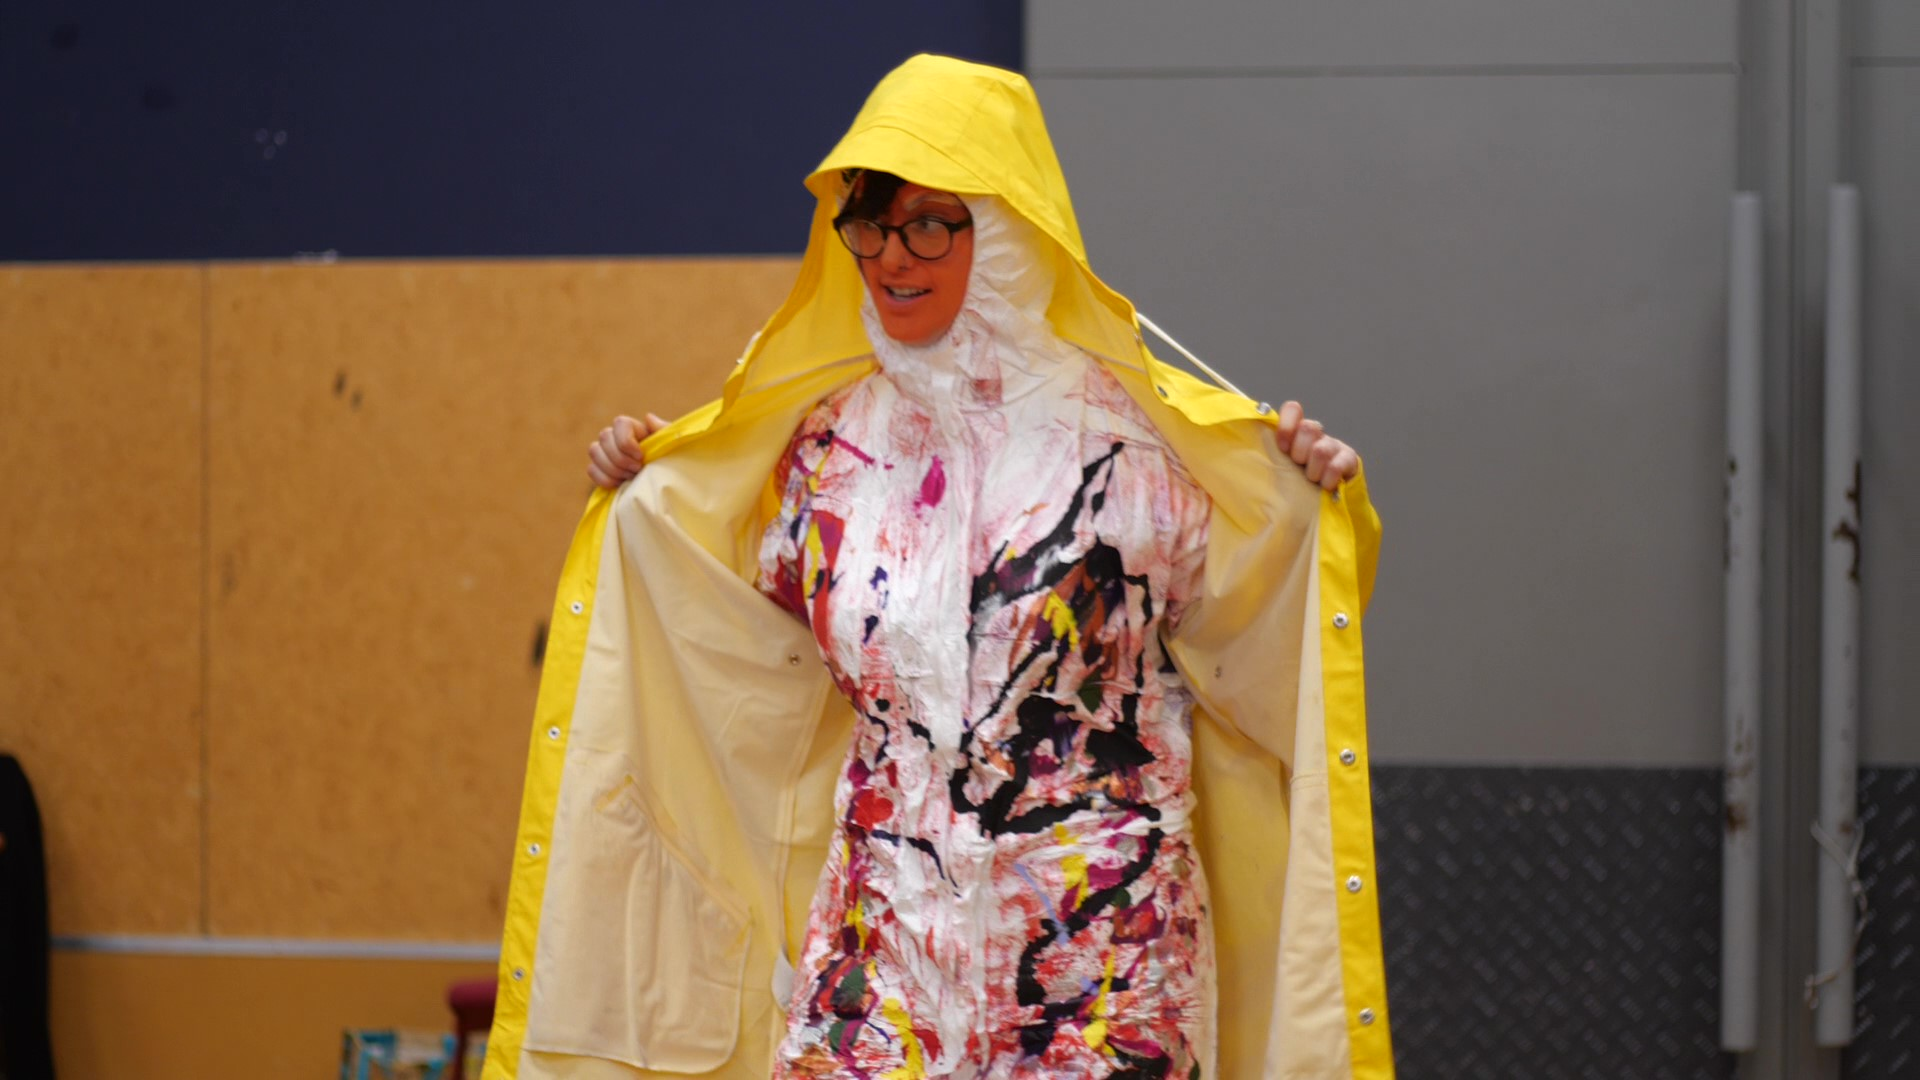 This image is of Sylvie McCreanor modelling Paul Holme's wearable arts piece, a Disabled Oompah Loompah. Her face is painted bright orange, she is smiling and looking to the audience at her side. She is wearing black rimmed eye glasses. Sylvie is wearing a bright yellow raincoat over brightly spray painted white paper overalls. The hoods for the overalls and coat are up. She is holding the raincoat wide open to expose the overalls underneath. Paul has drizzled and splattered black, yellow, orange, red, purple and pink paint down the front of the overalls. The pattern looks like a multi-coloured, braided swirling river and continues from shoulders to feet. The back of the overalls are spray painted purple and the hood has a rough stripe of green. The Ooompah Loompah music from Charlie and the Chocolate Factory is playing.